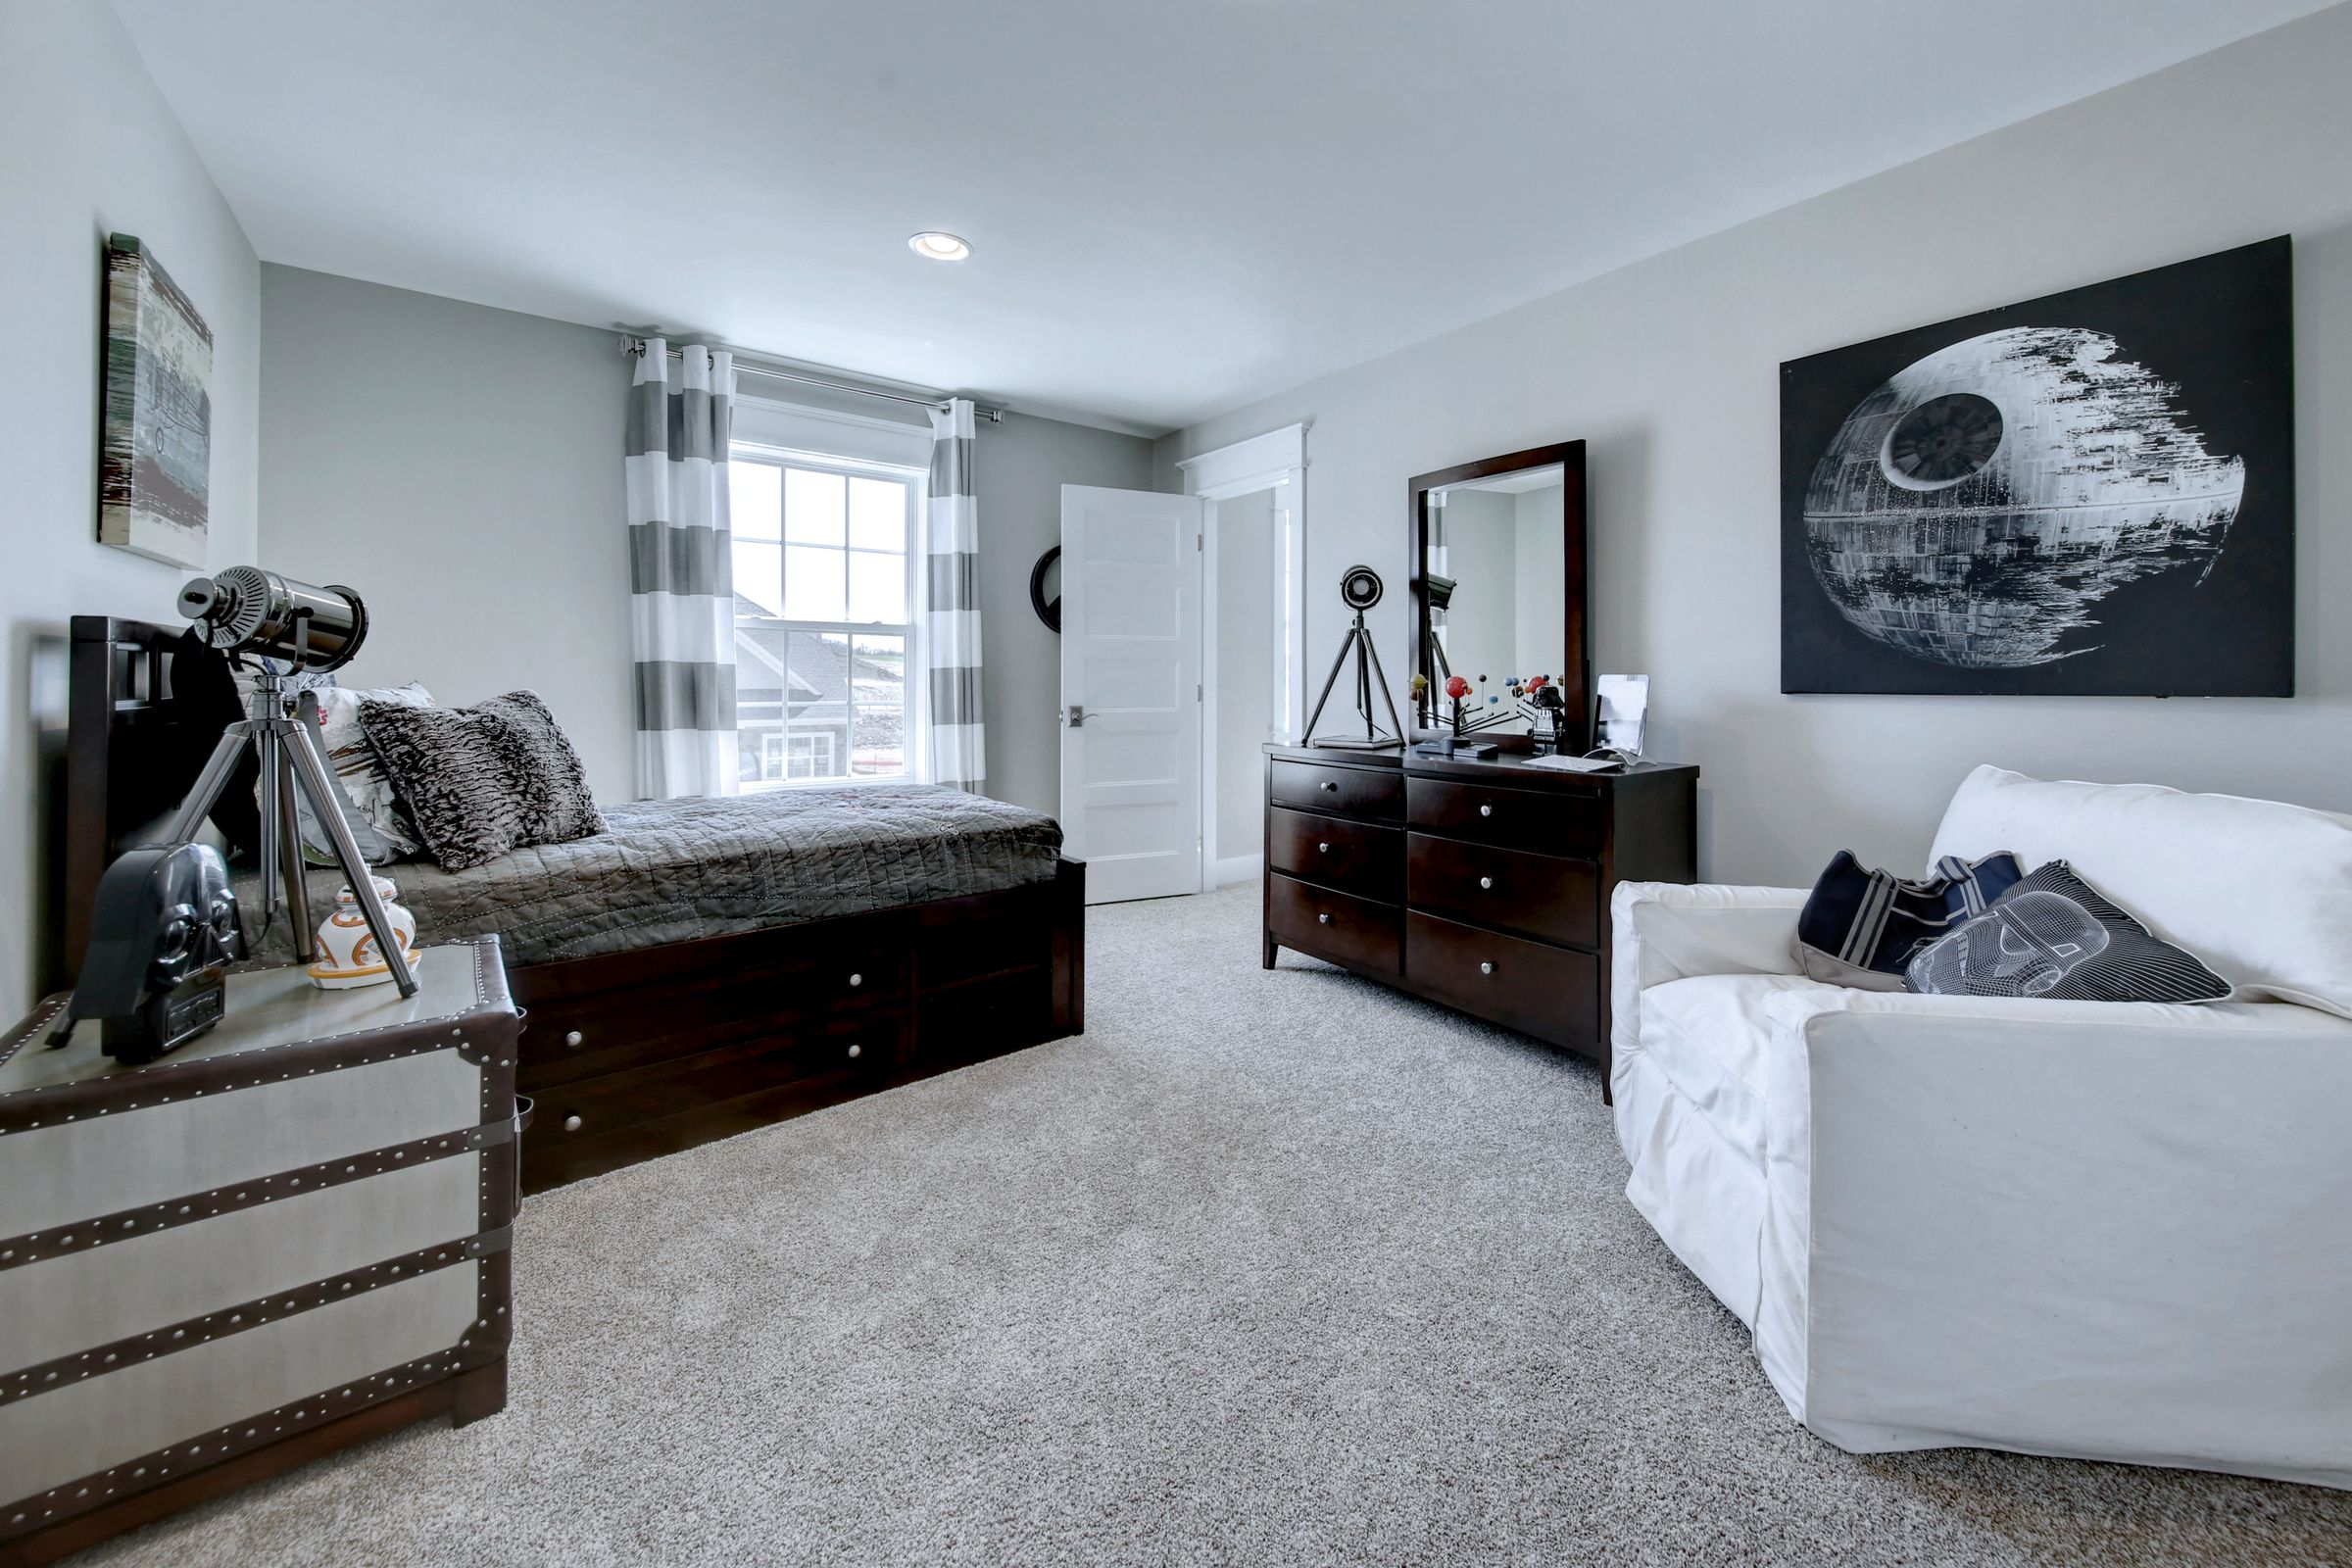 Living Area featured in the Ethan Heritage By Keystone Custom Homes in York, PA